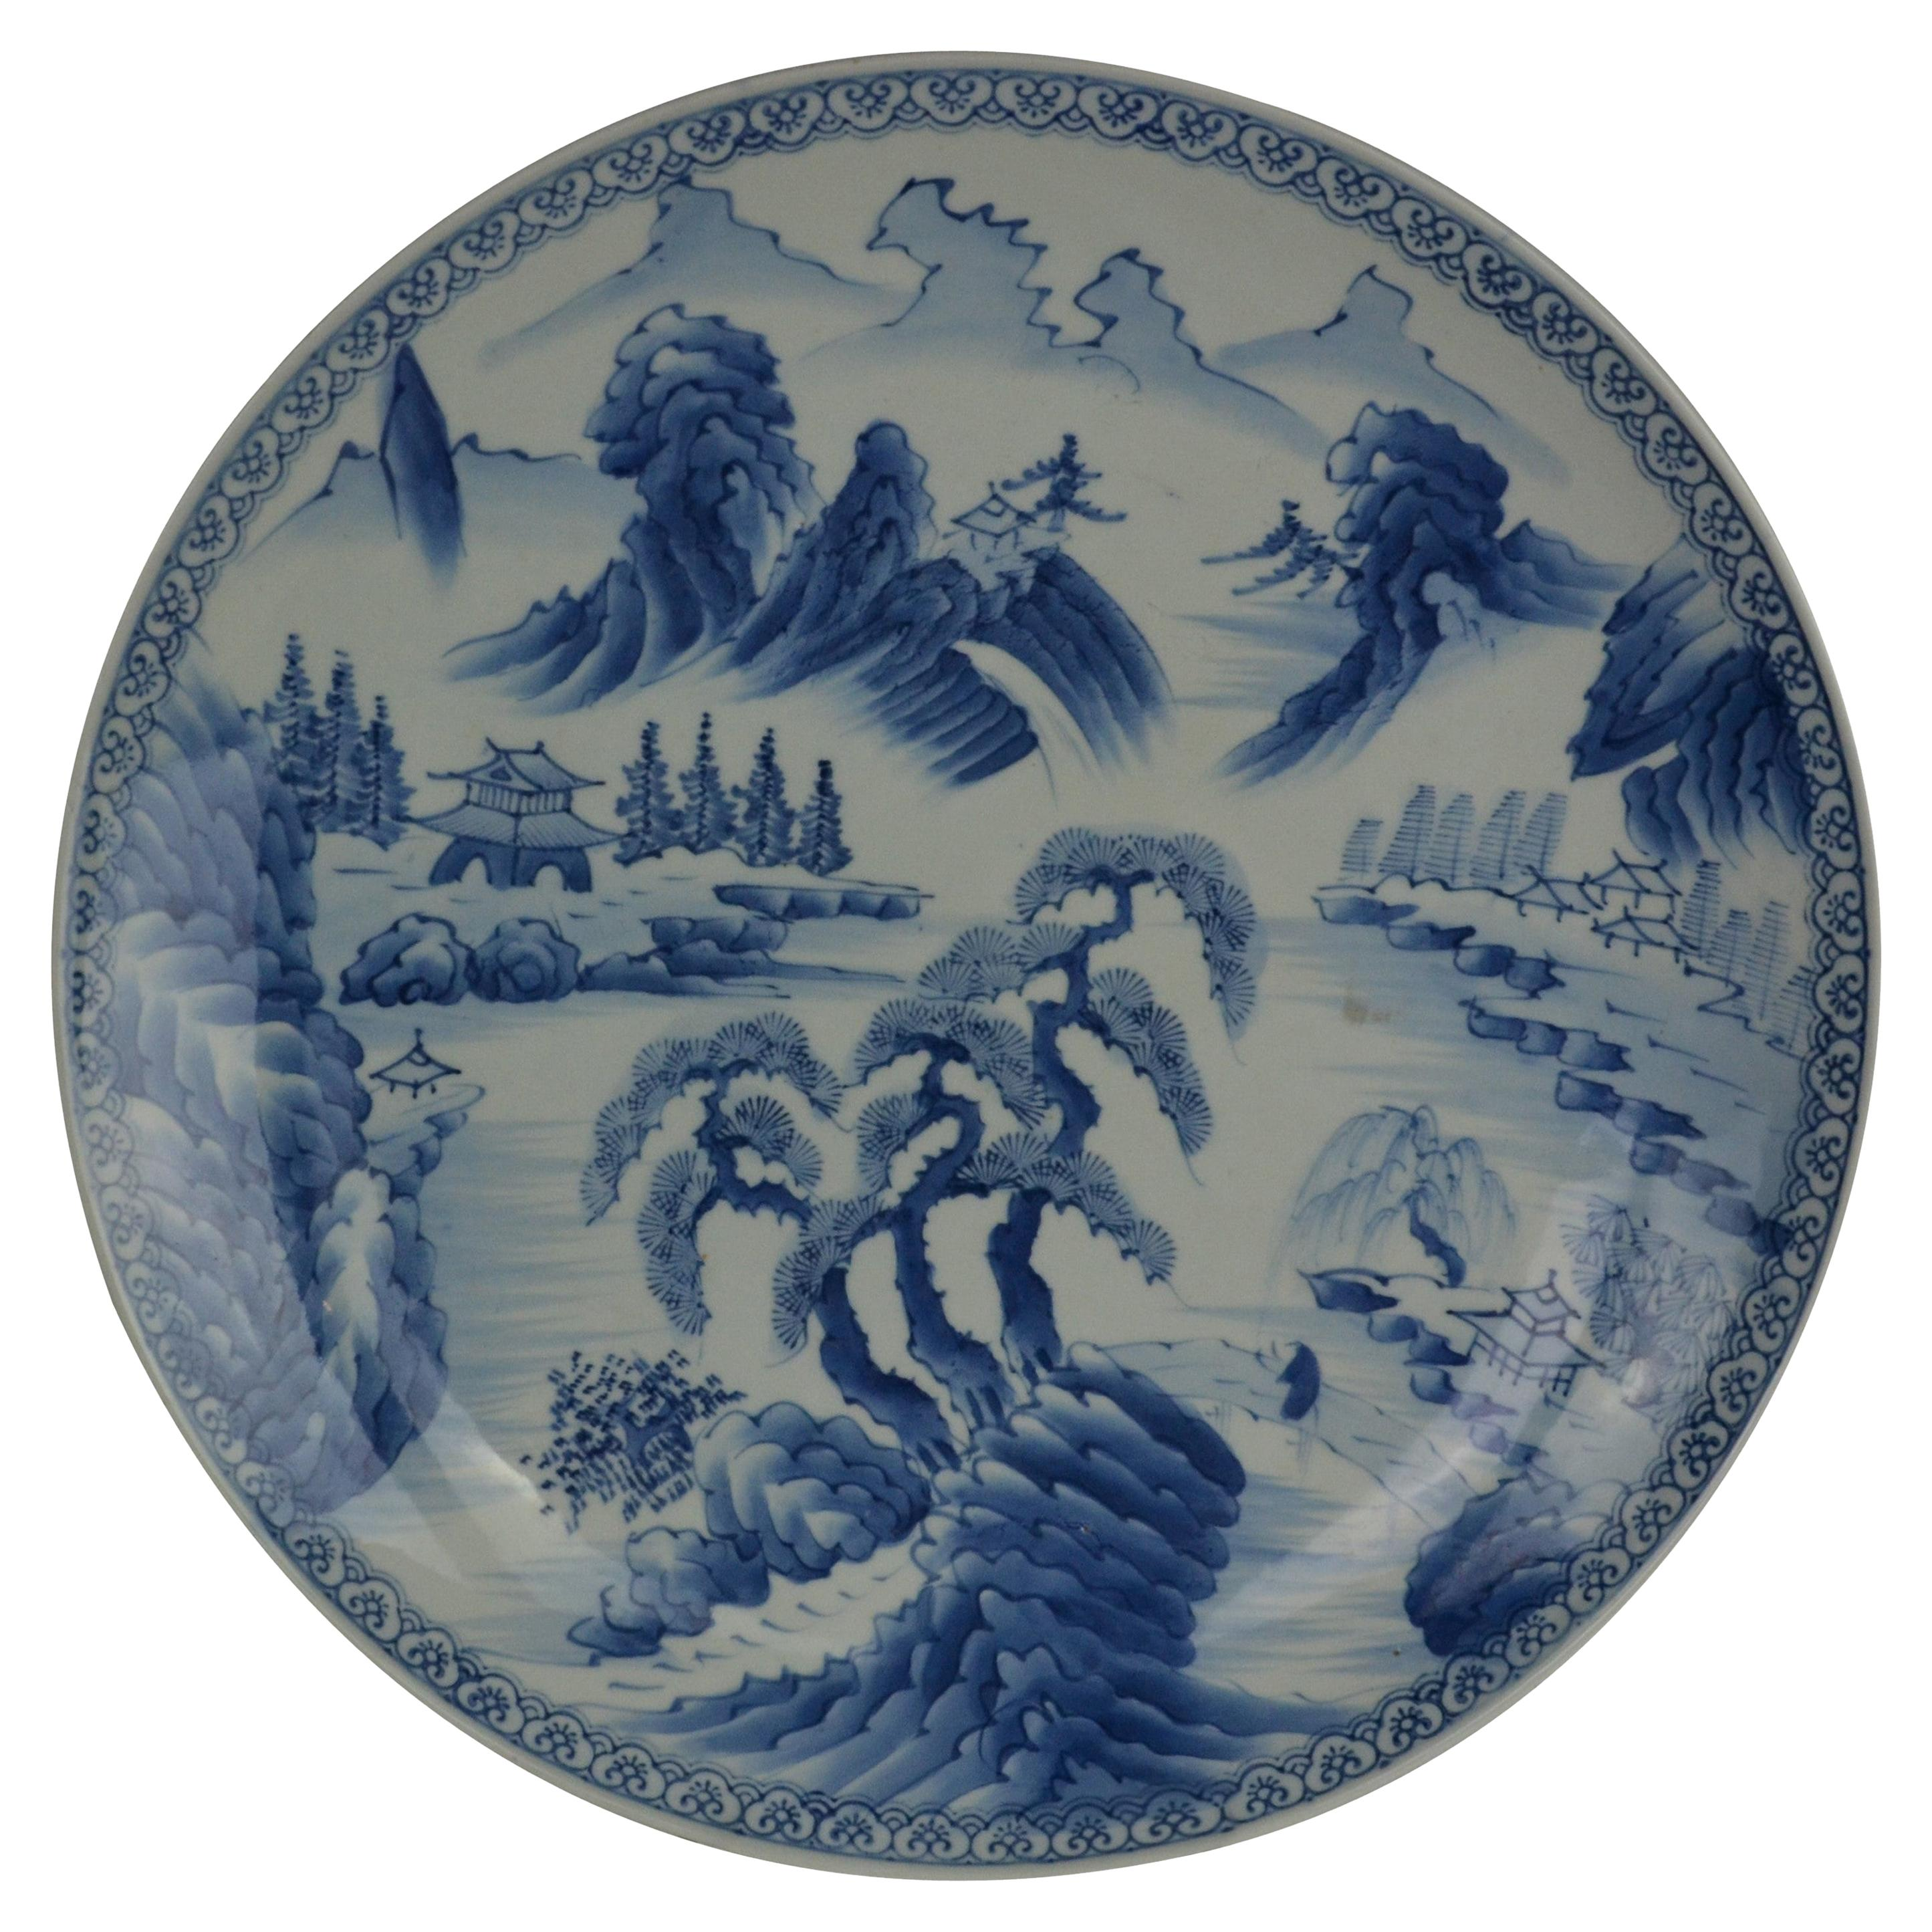 19th Century Japanese Platter or Charger